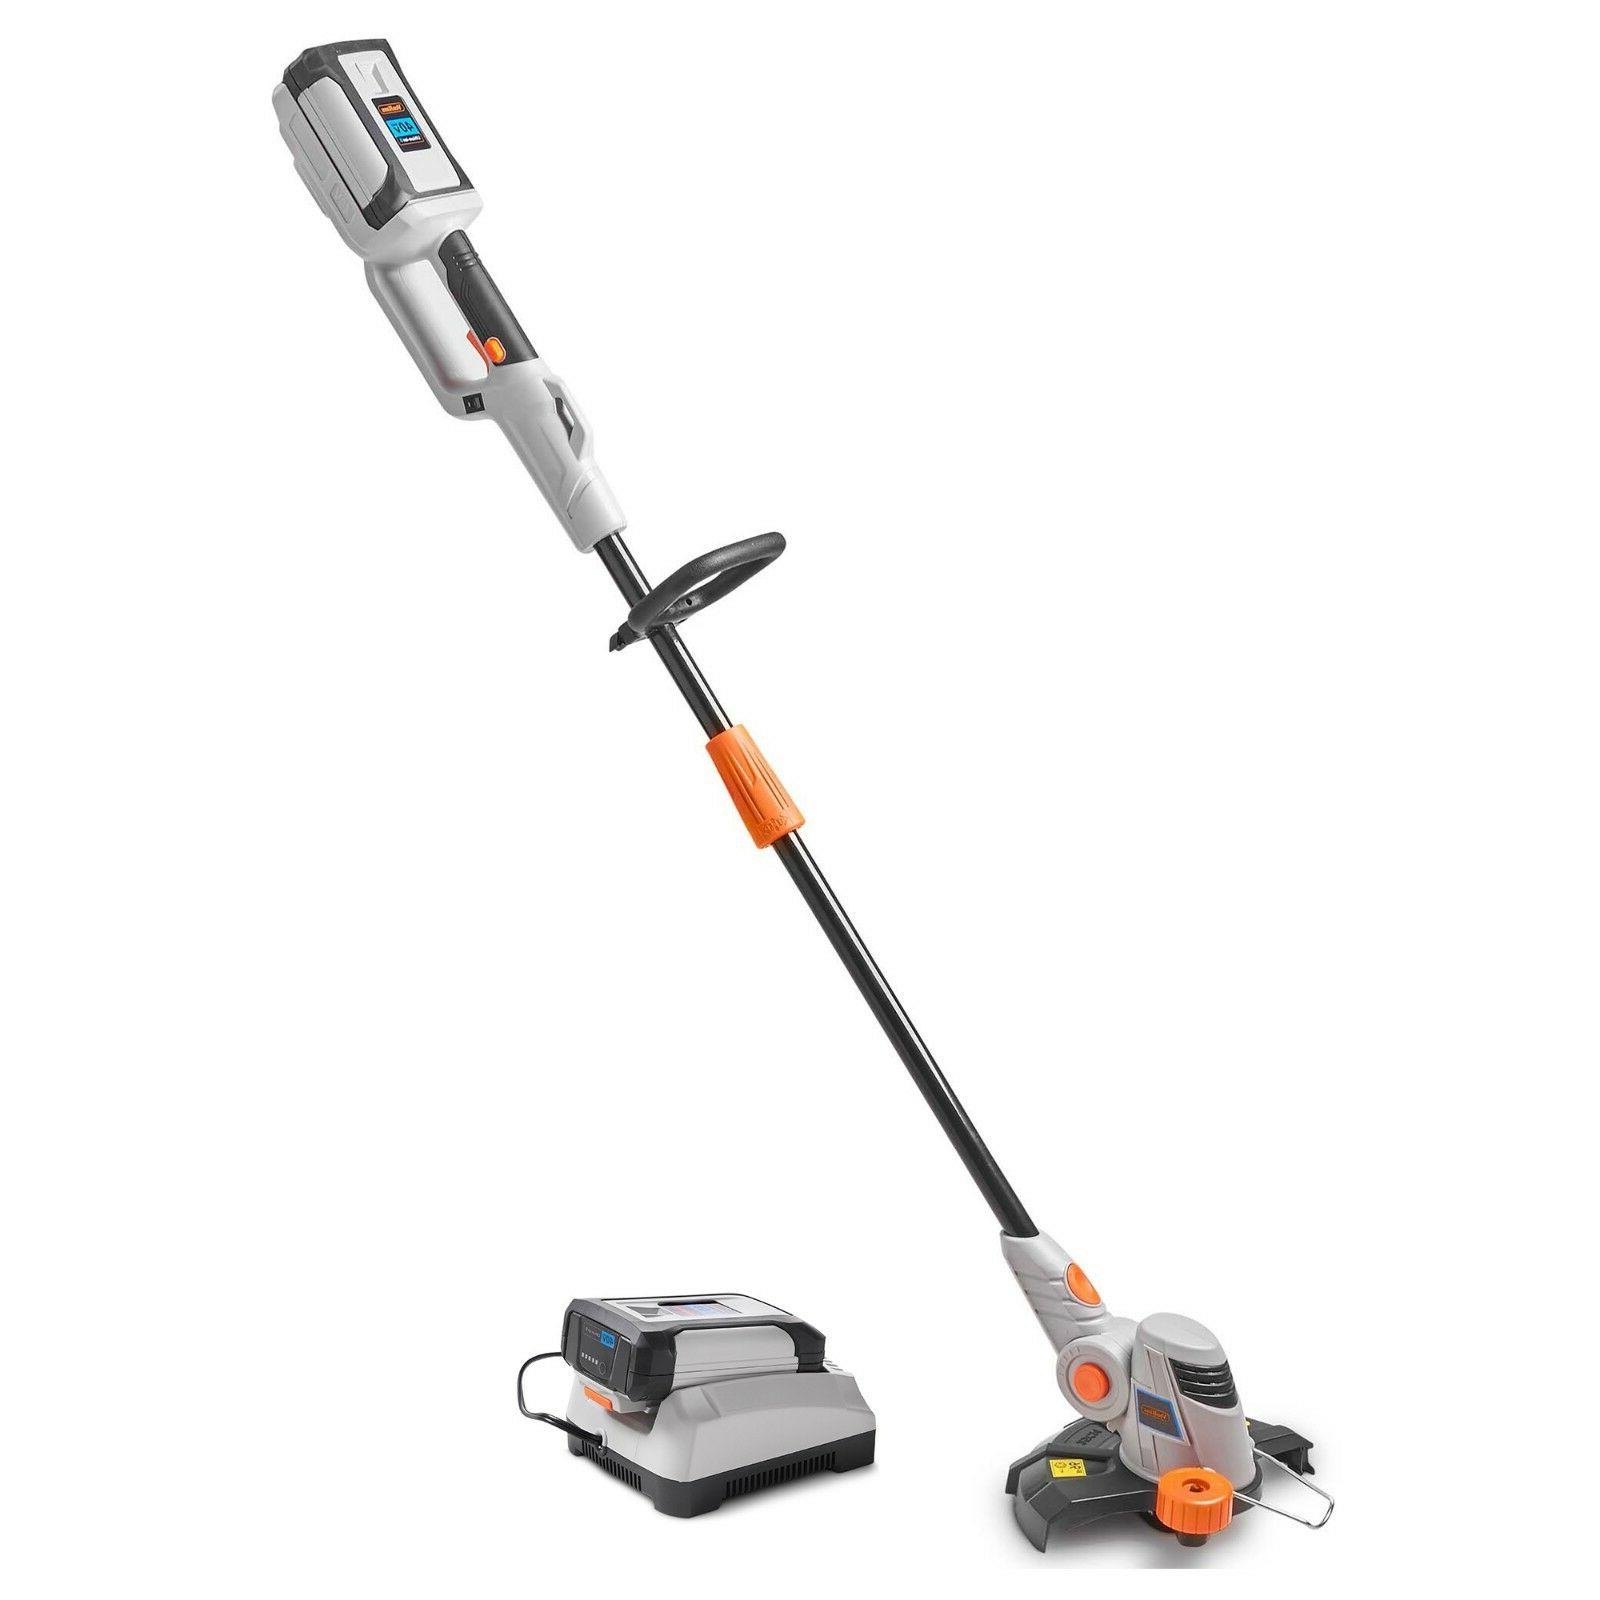 VonHaus 40V Cordless String Trimmer/Edger with Angle, Head